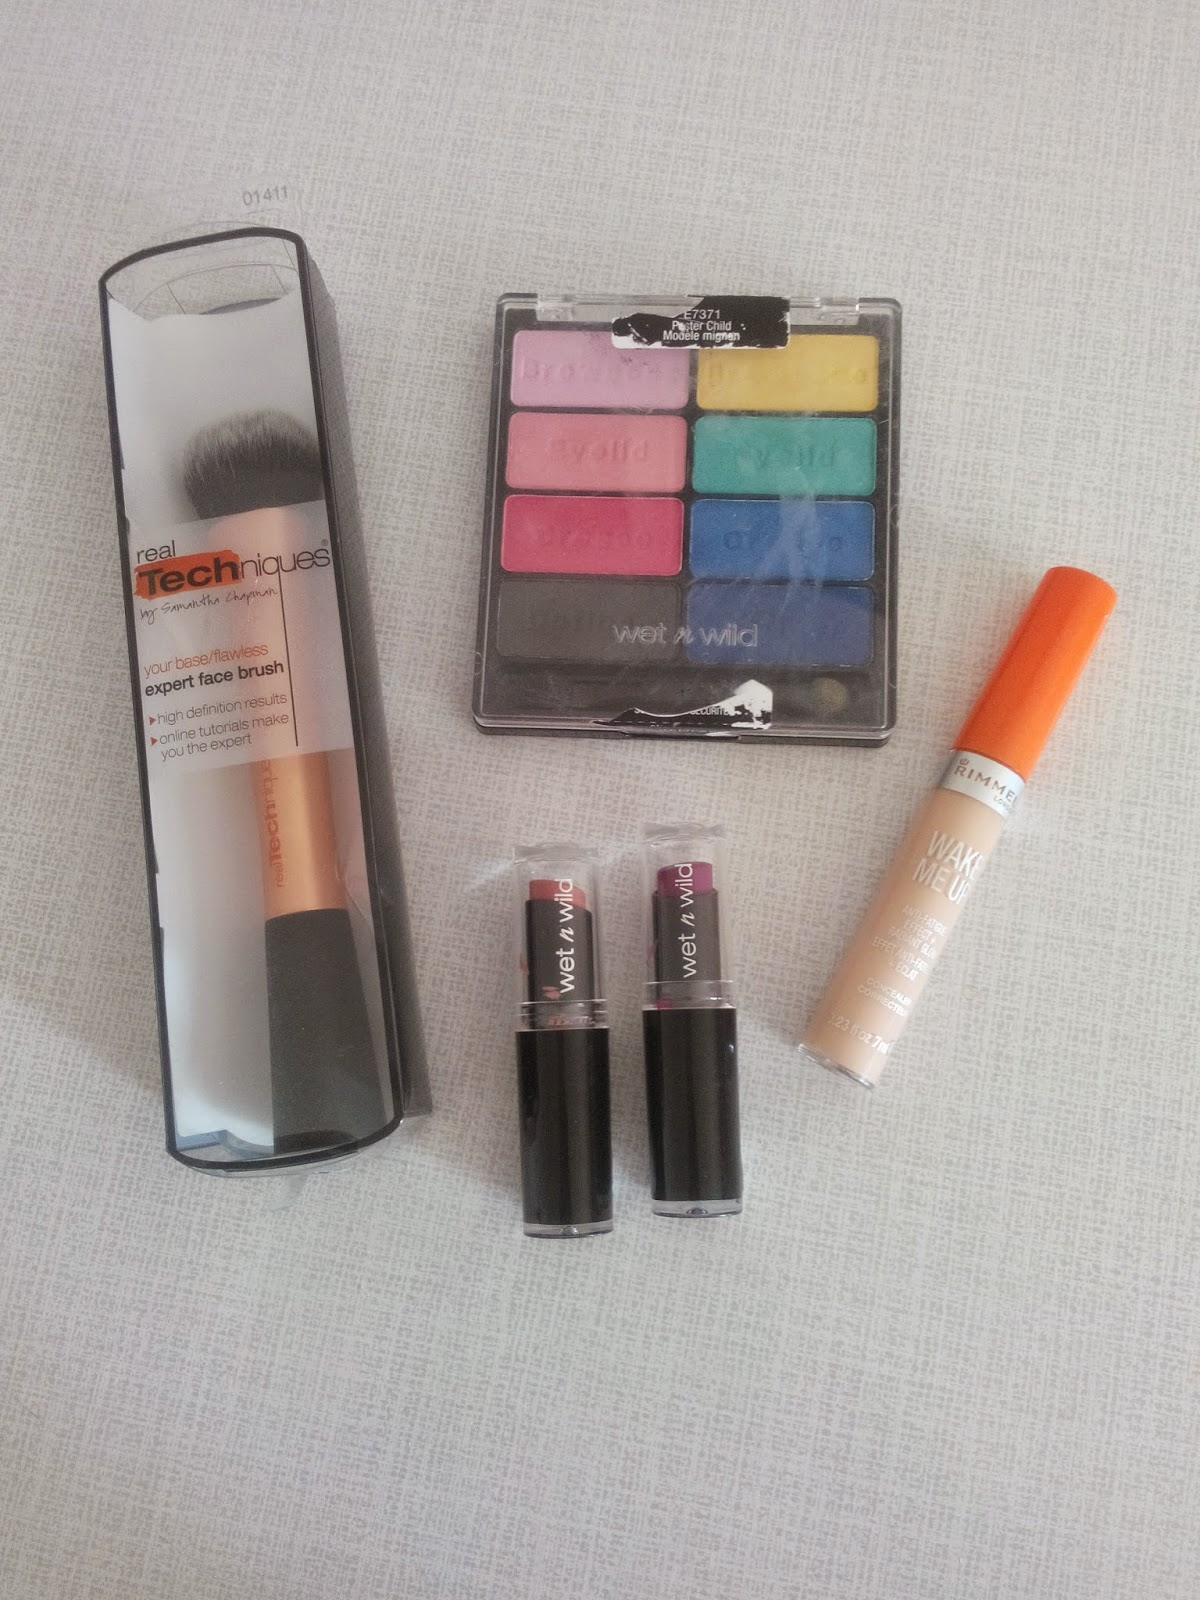 wet n wild rimmel wake me up real tekniques makyaj